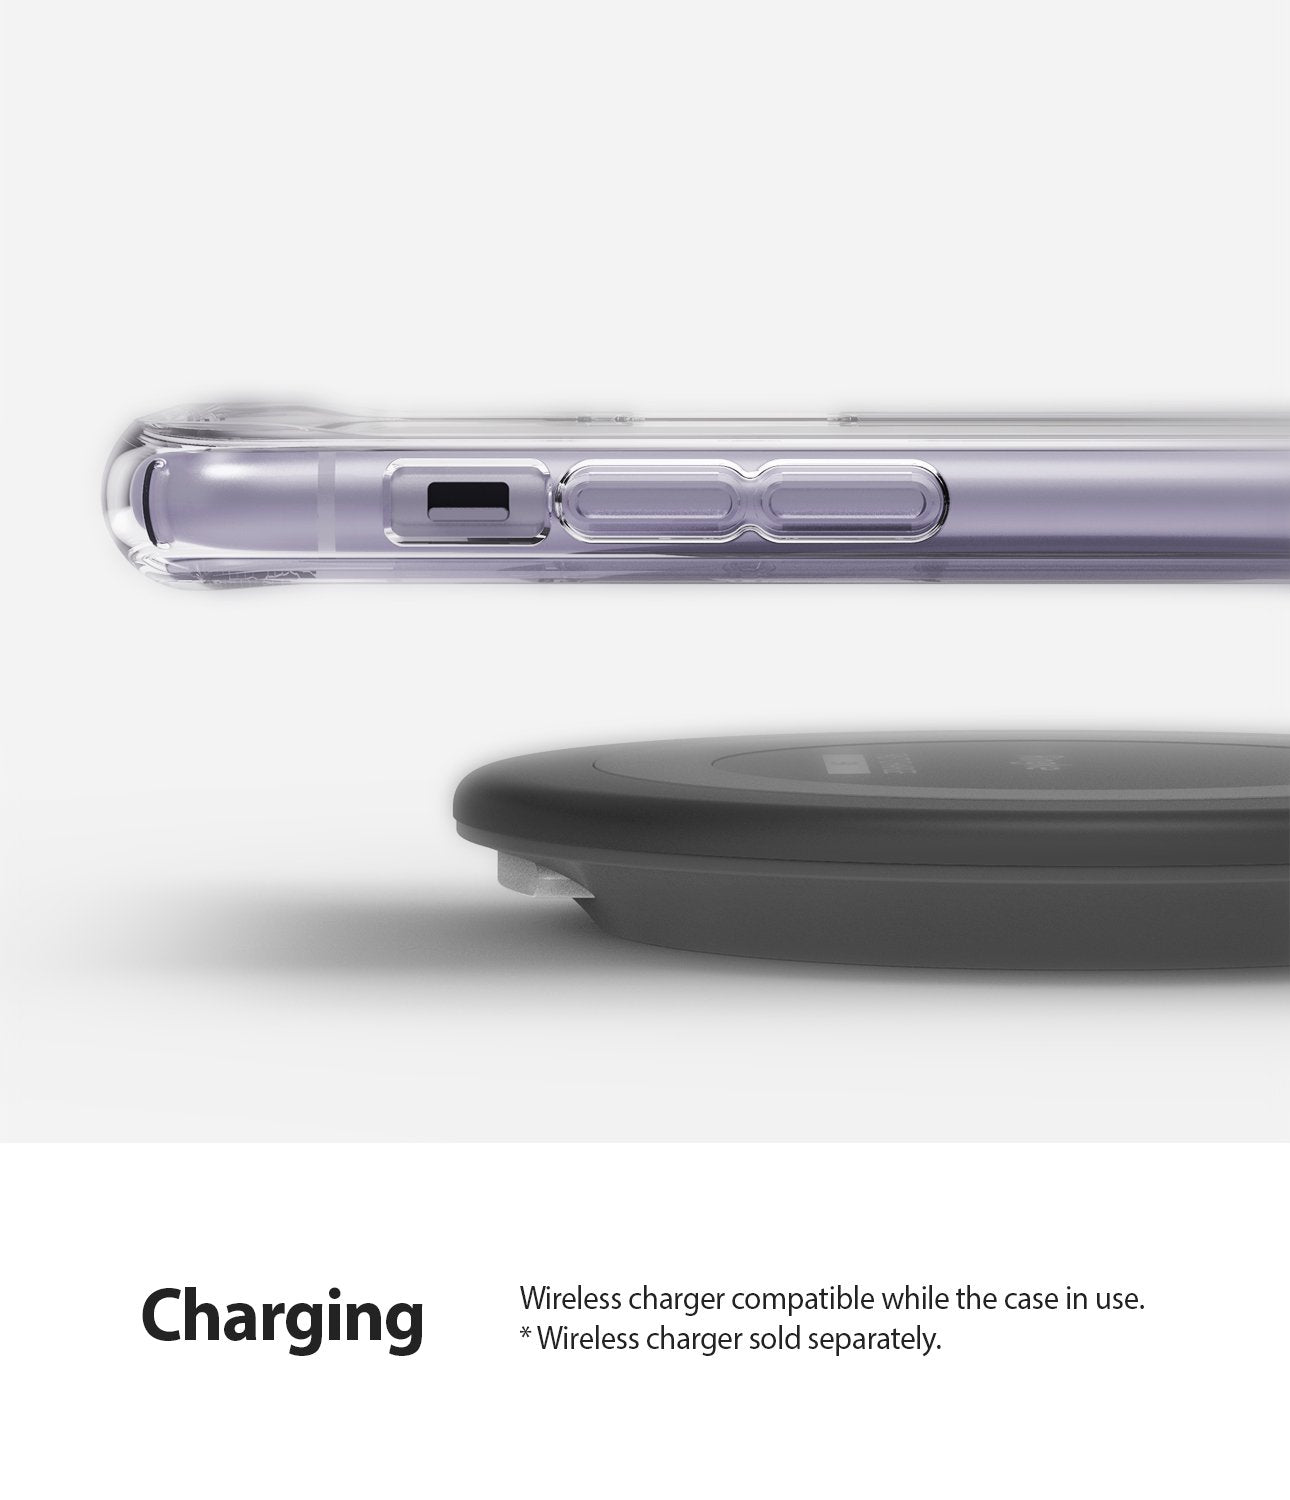 Ringke Fusion designed for iPhone 11 Case Clear Wireless Charger Compatibility